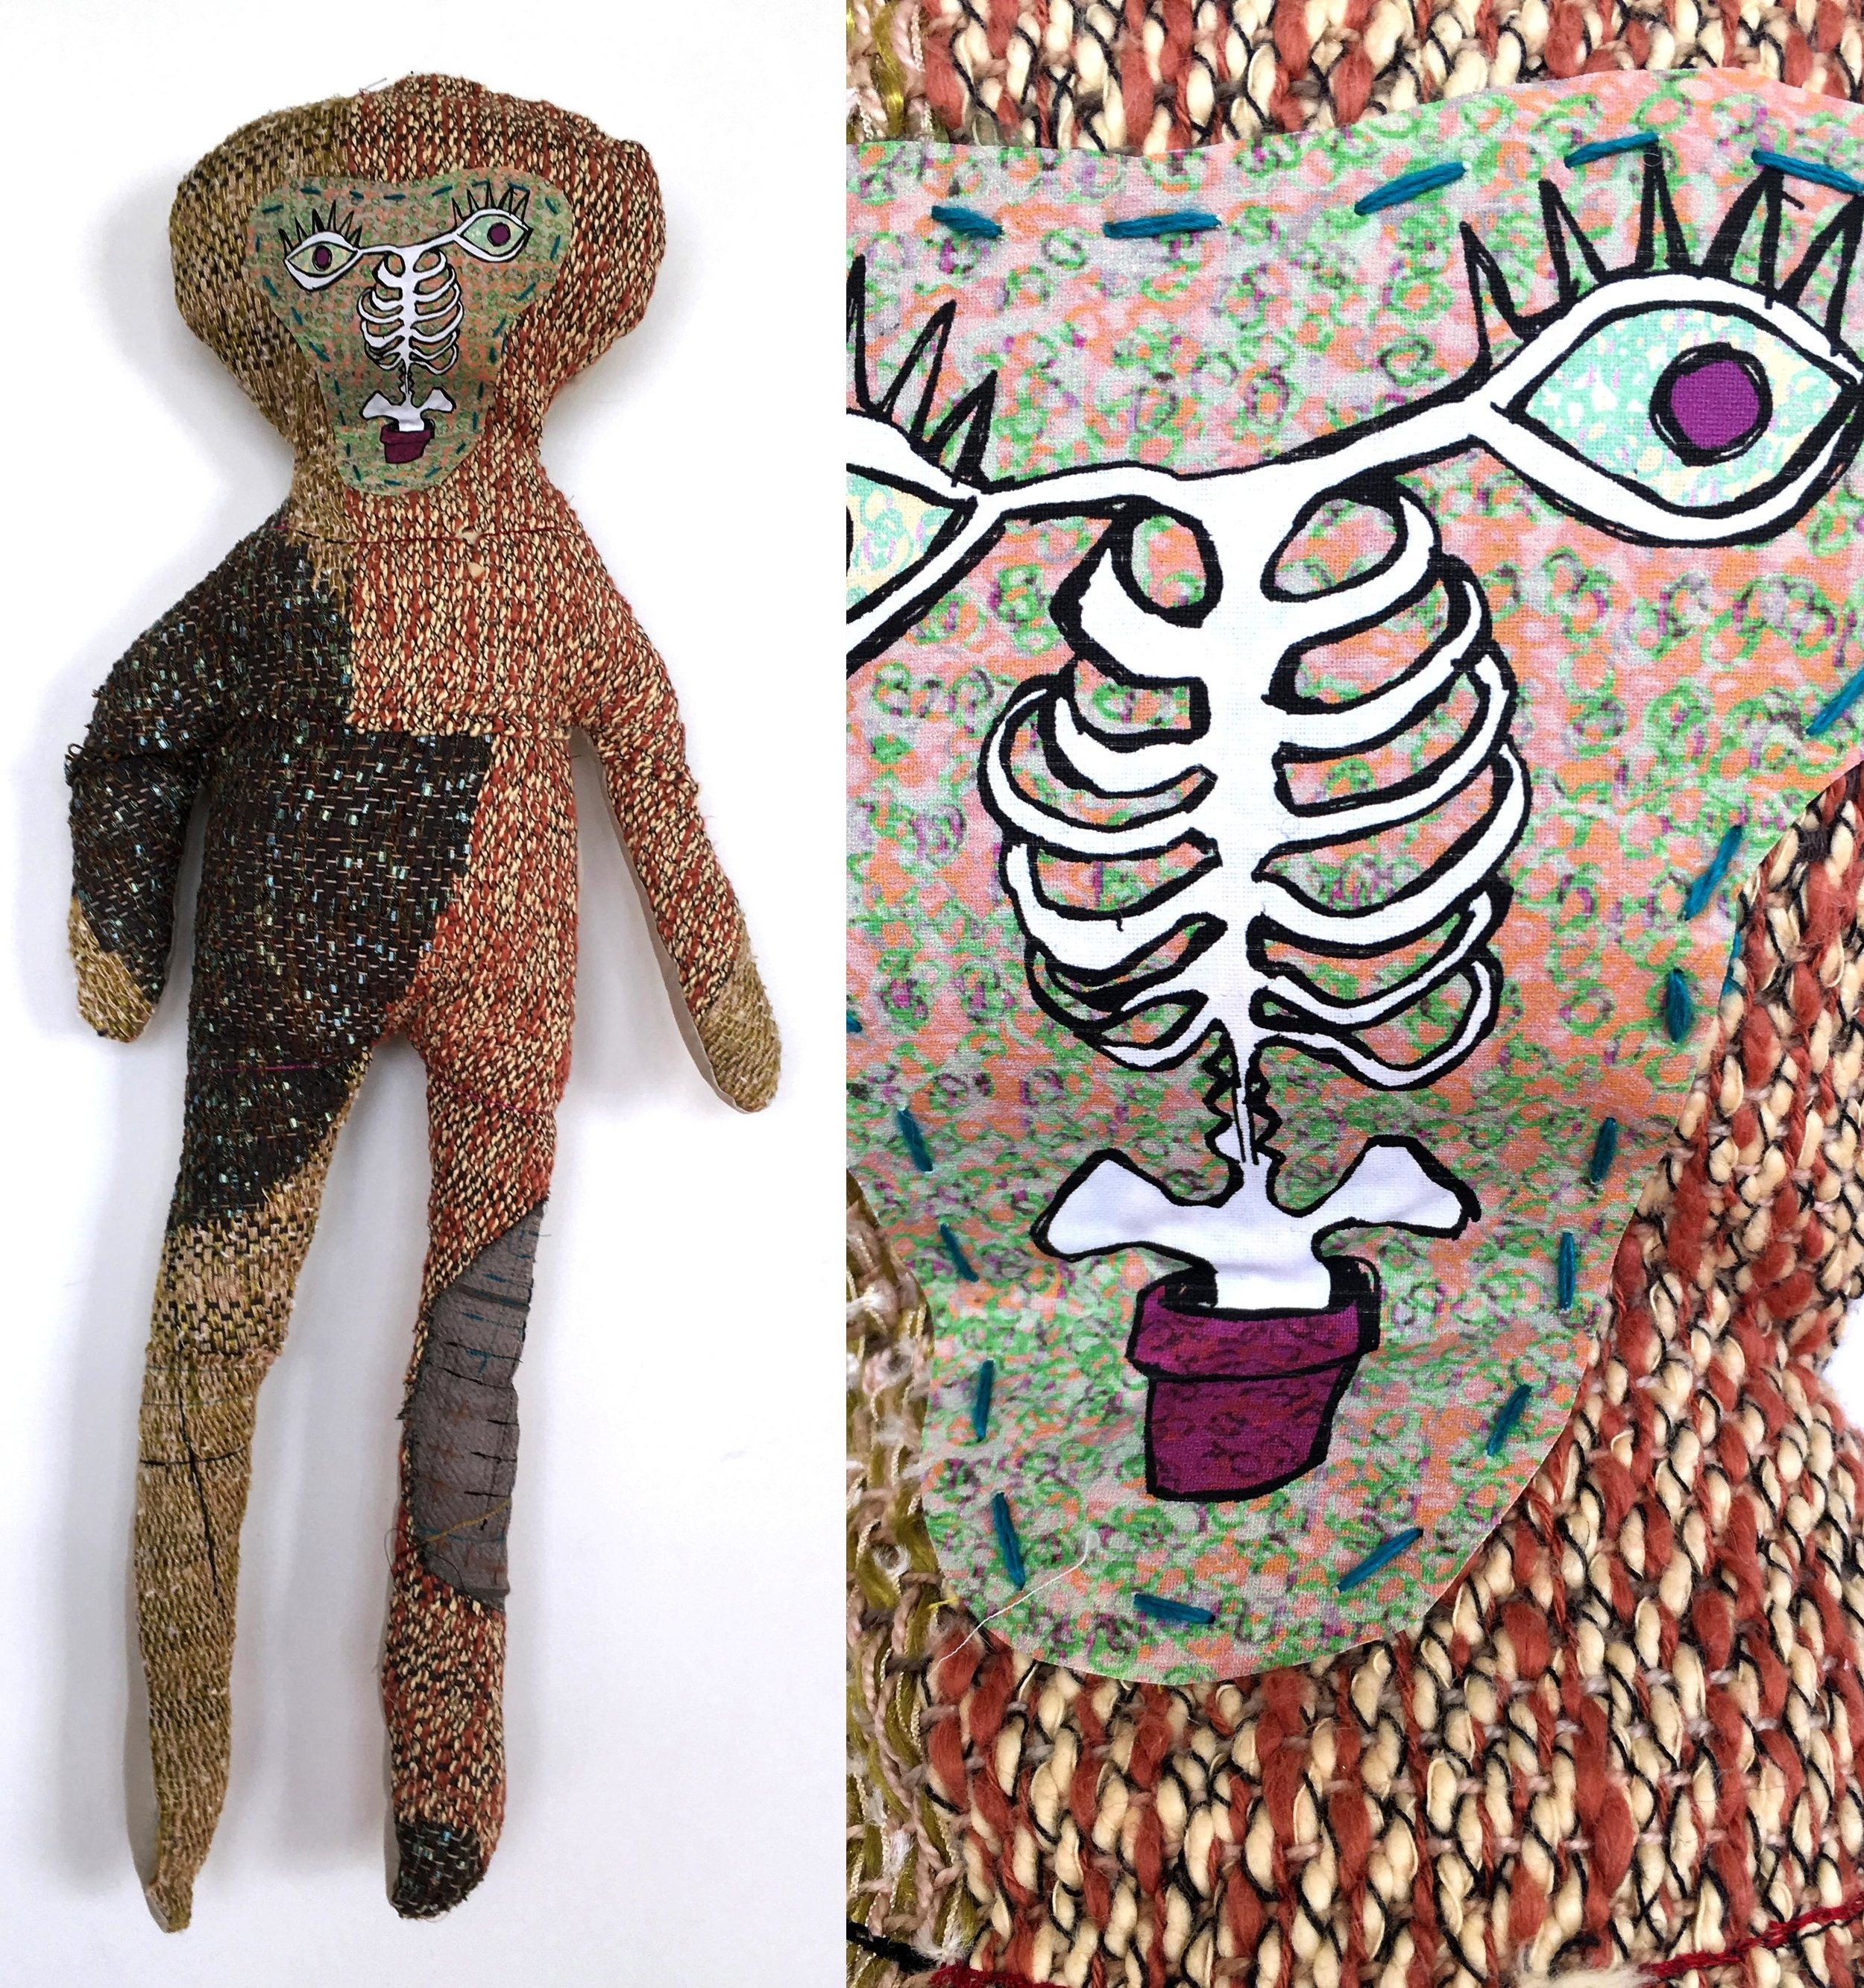 """Spine Child  h: 28"""" x w: 12"""" hand-woven and machine-made fabric, embroidery, inkjet prints, fleece 2017"""